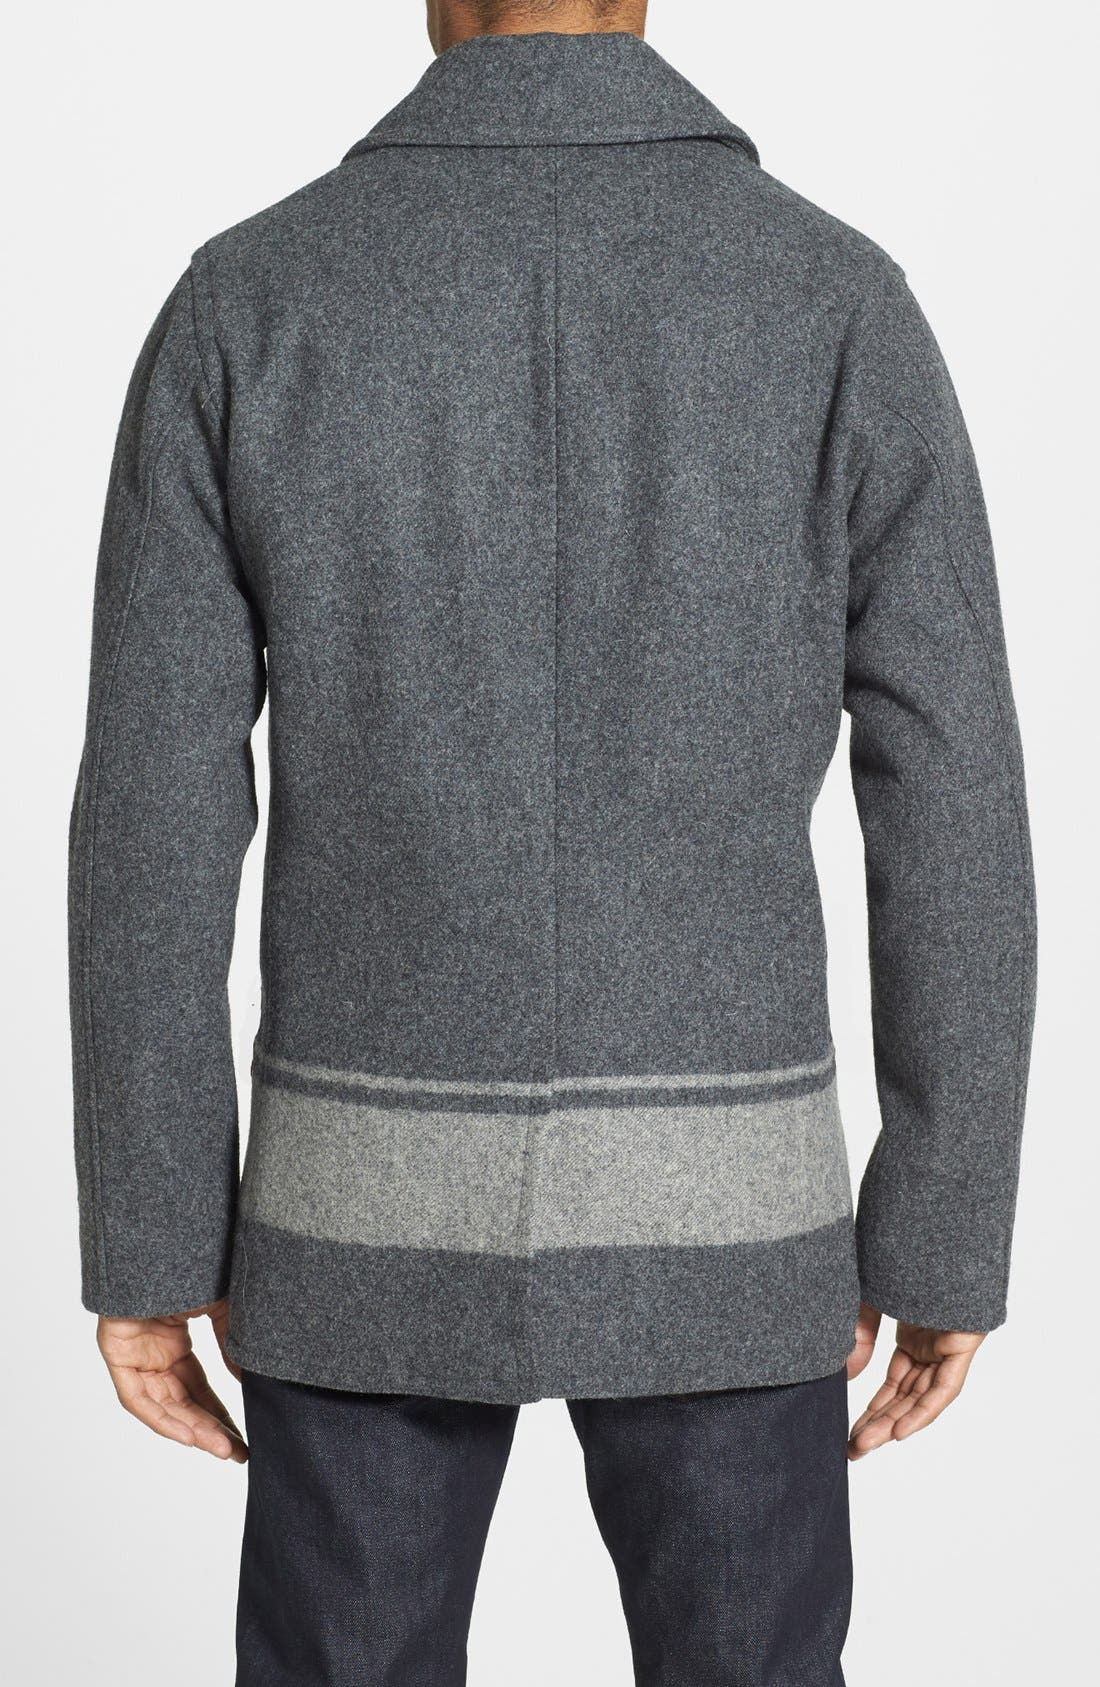 WOOLRICH,                             'Dockworker' Double Breasted Peacoat,                             Alternate thumbnail 3, color,                             034